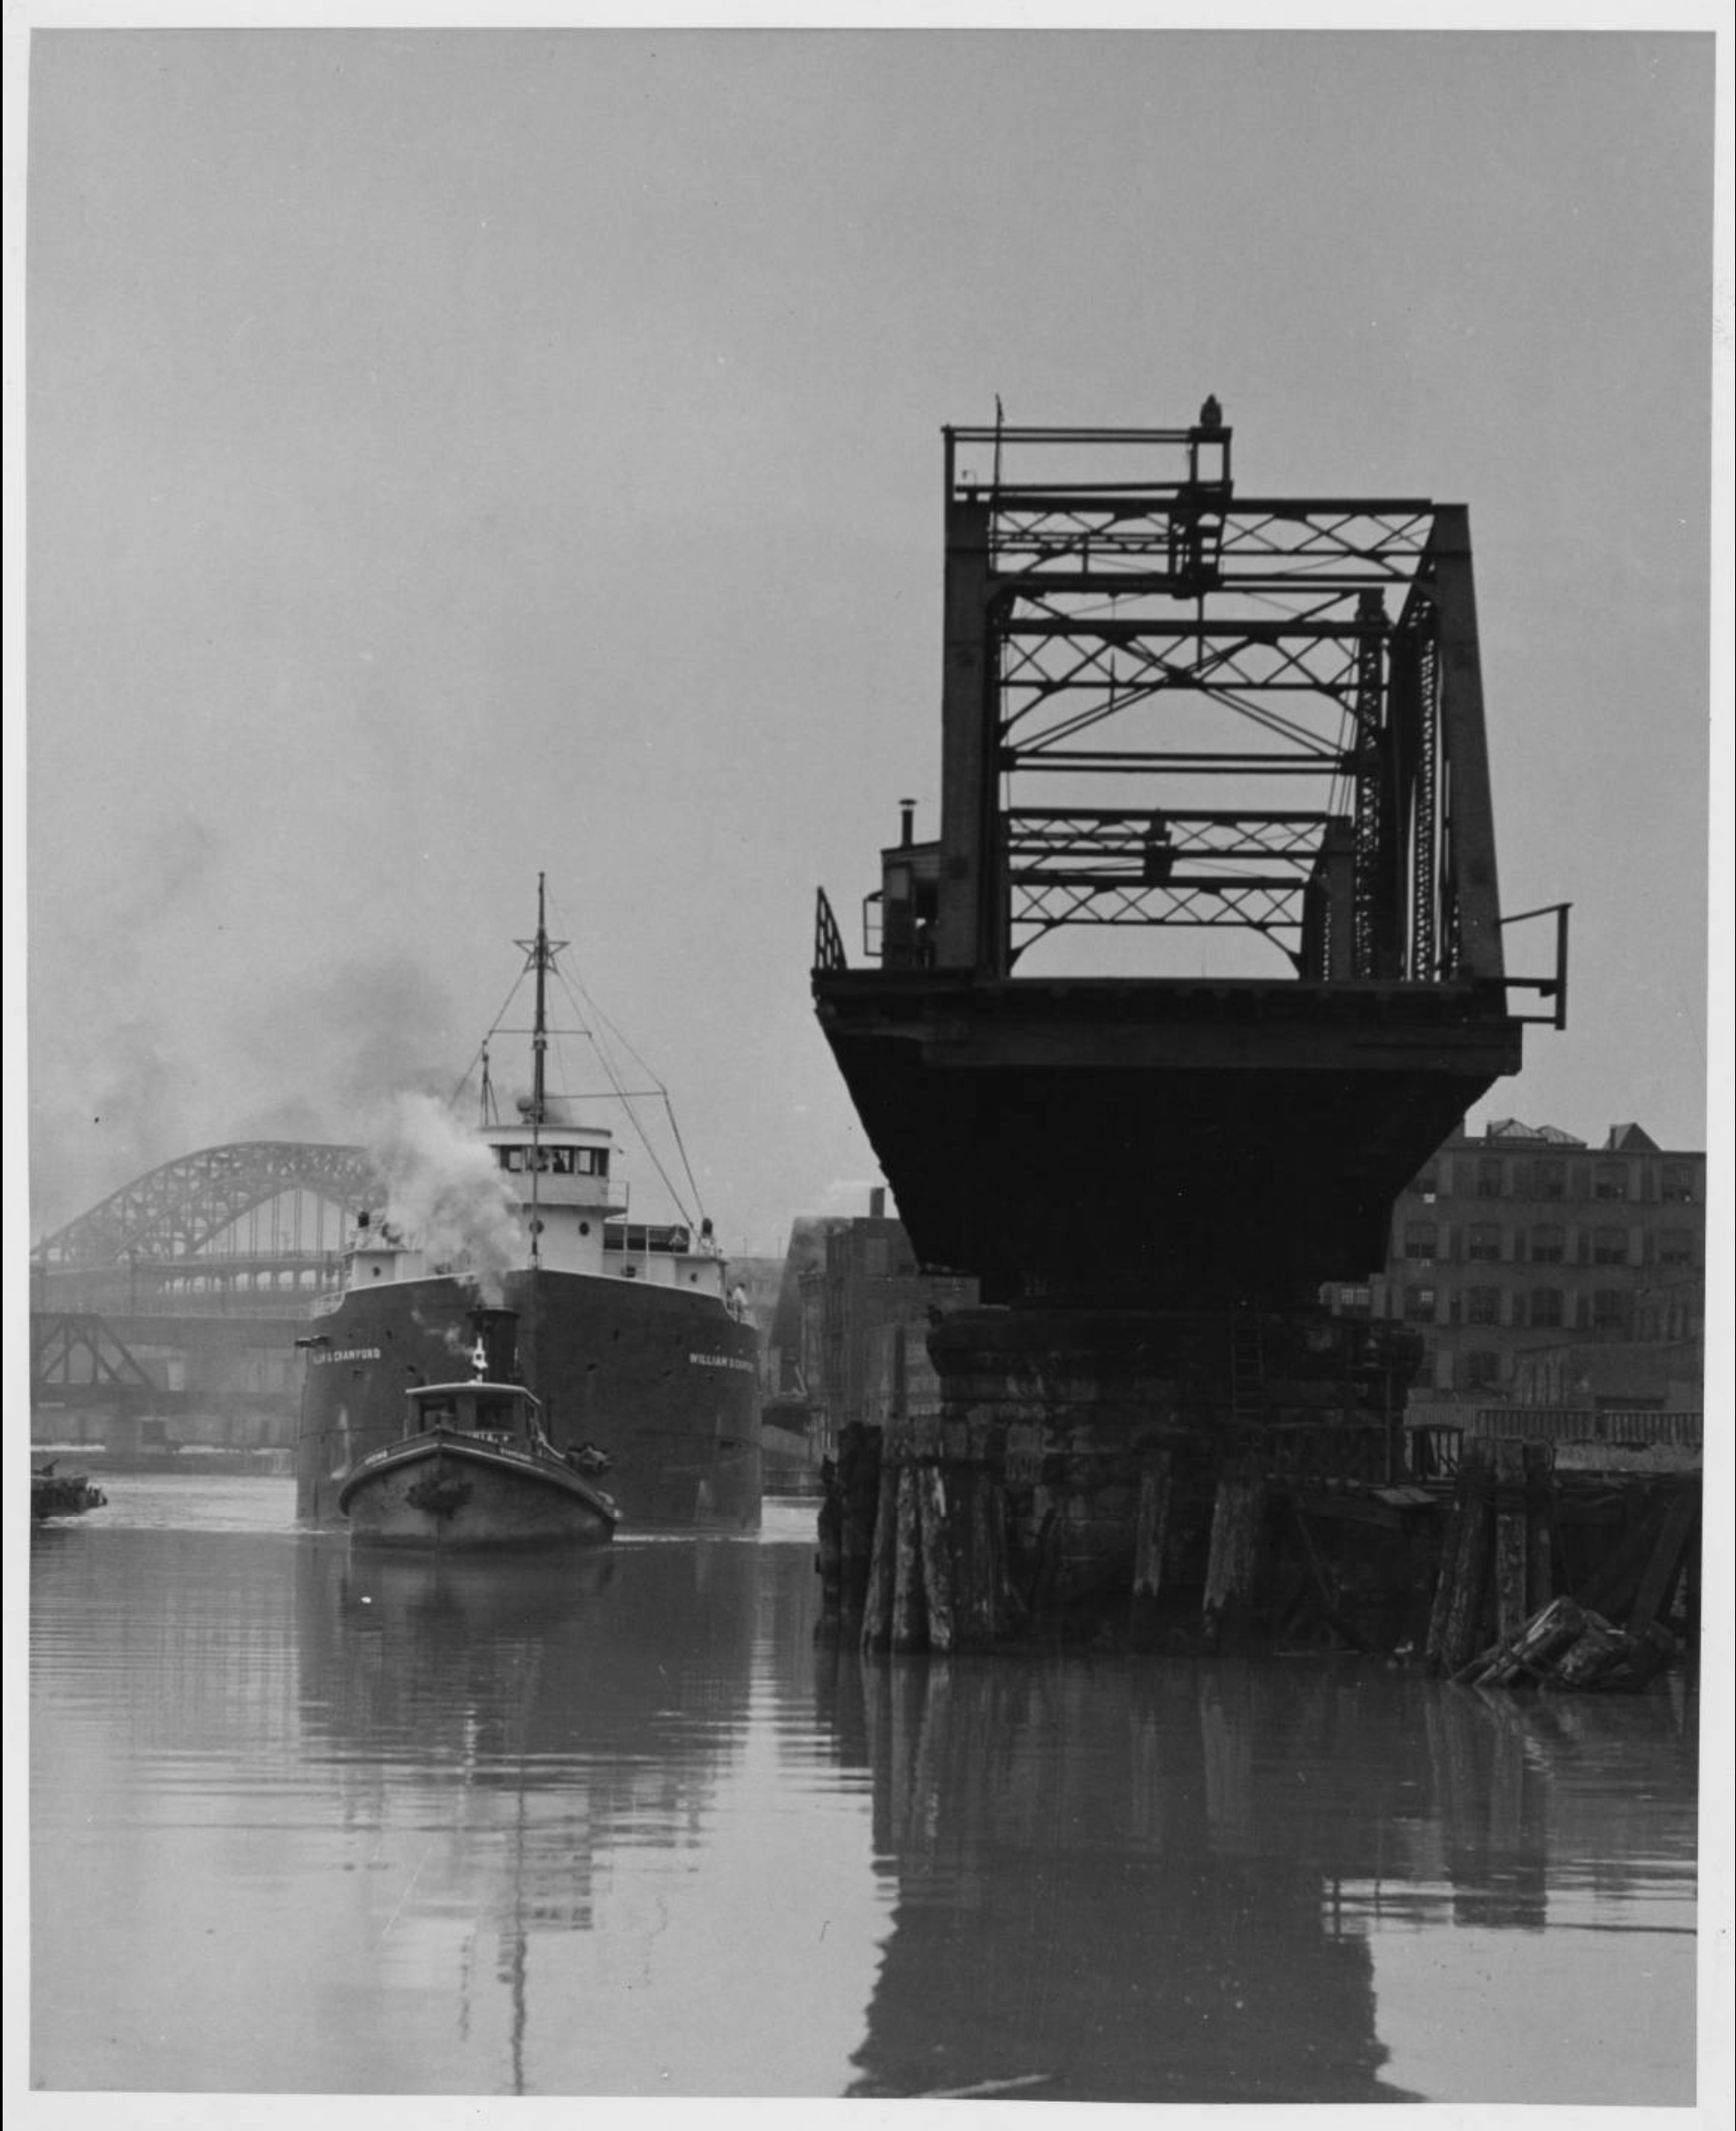 Black and white photograph of a swing bridge in the open position.